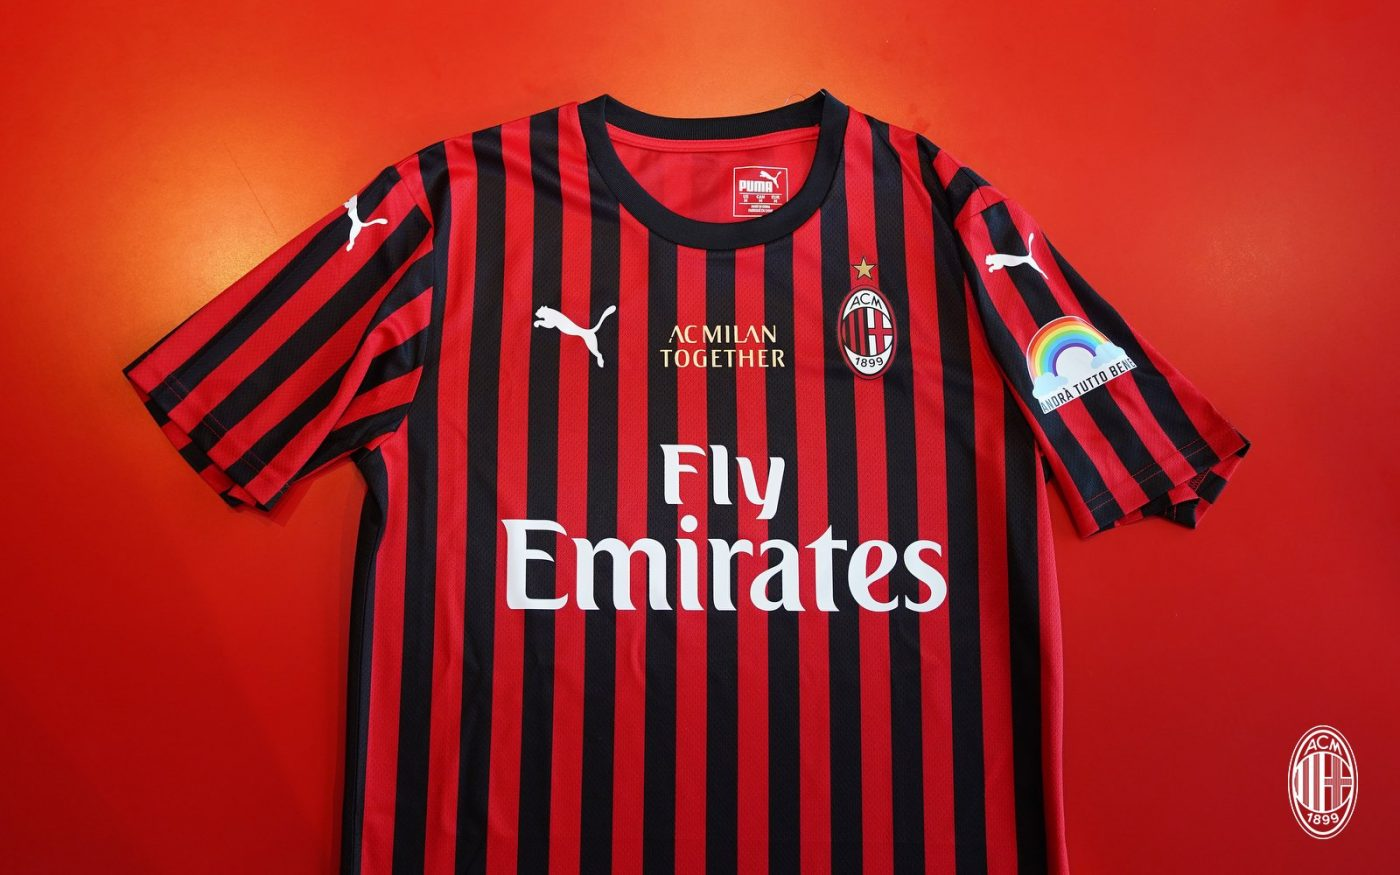 maillot-ac-milan-personnel-soignant-hopitaux